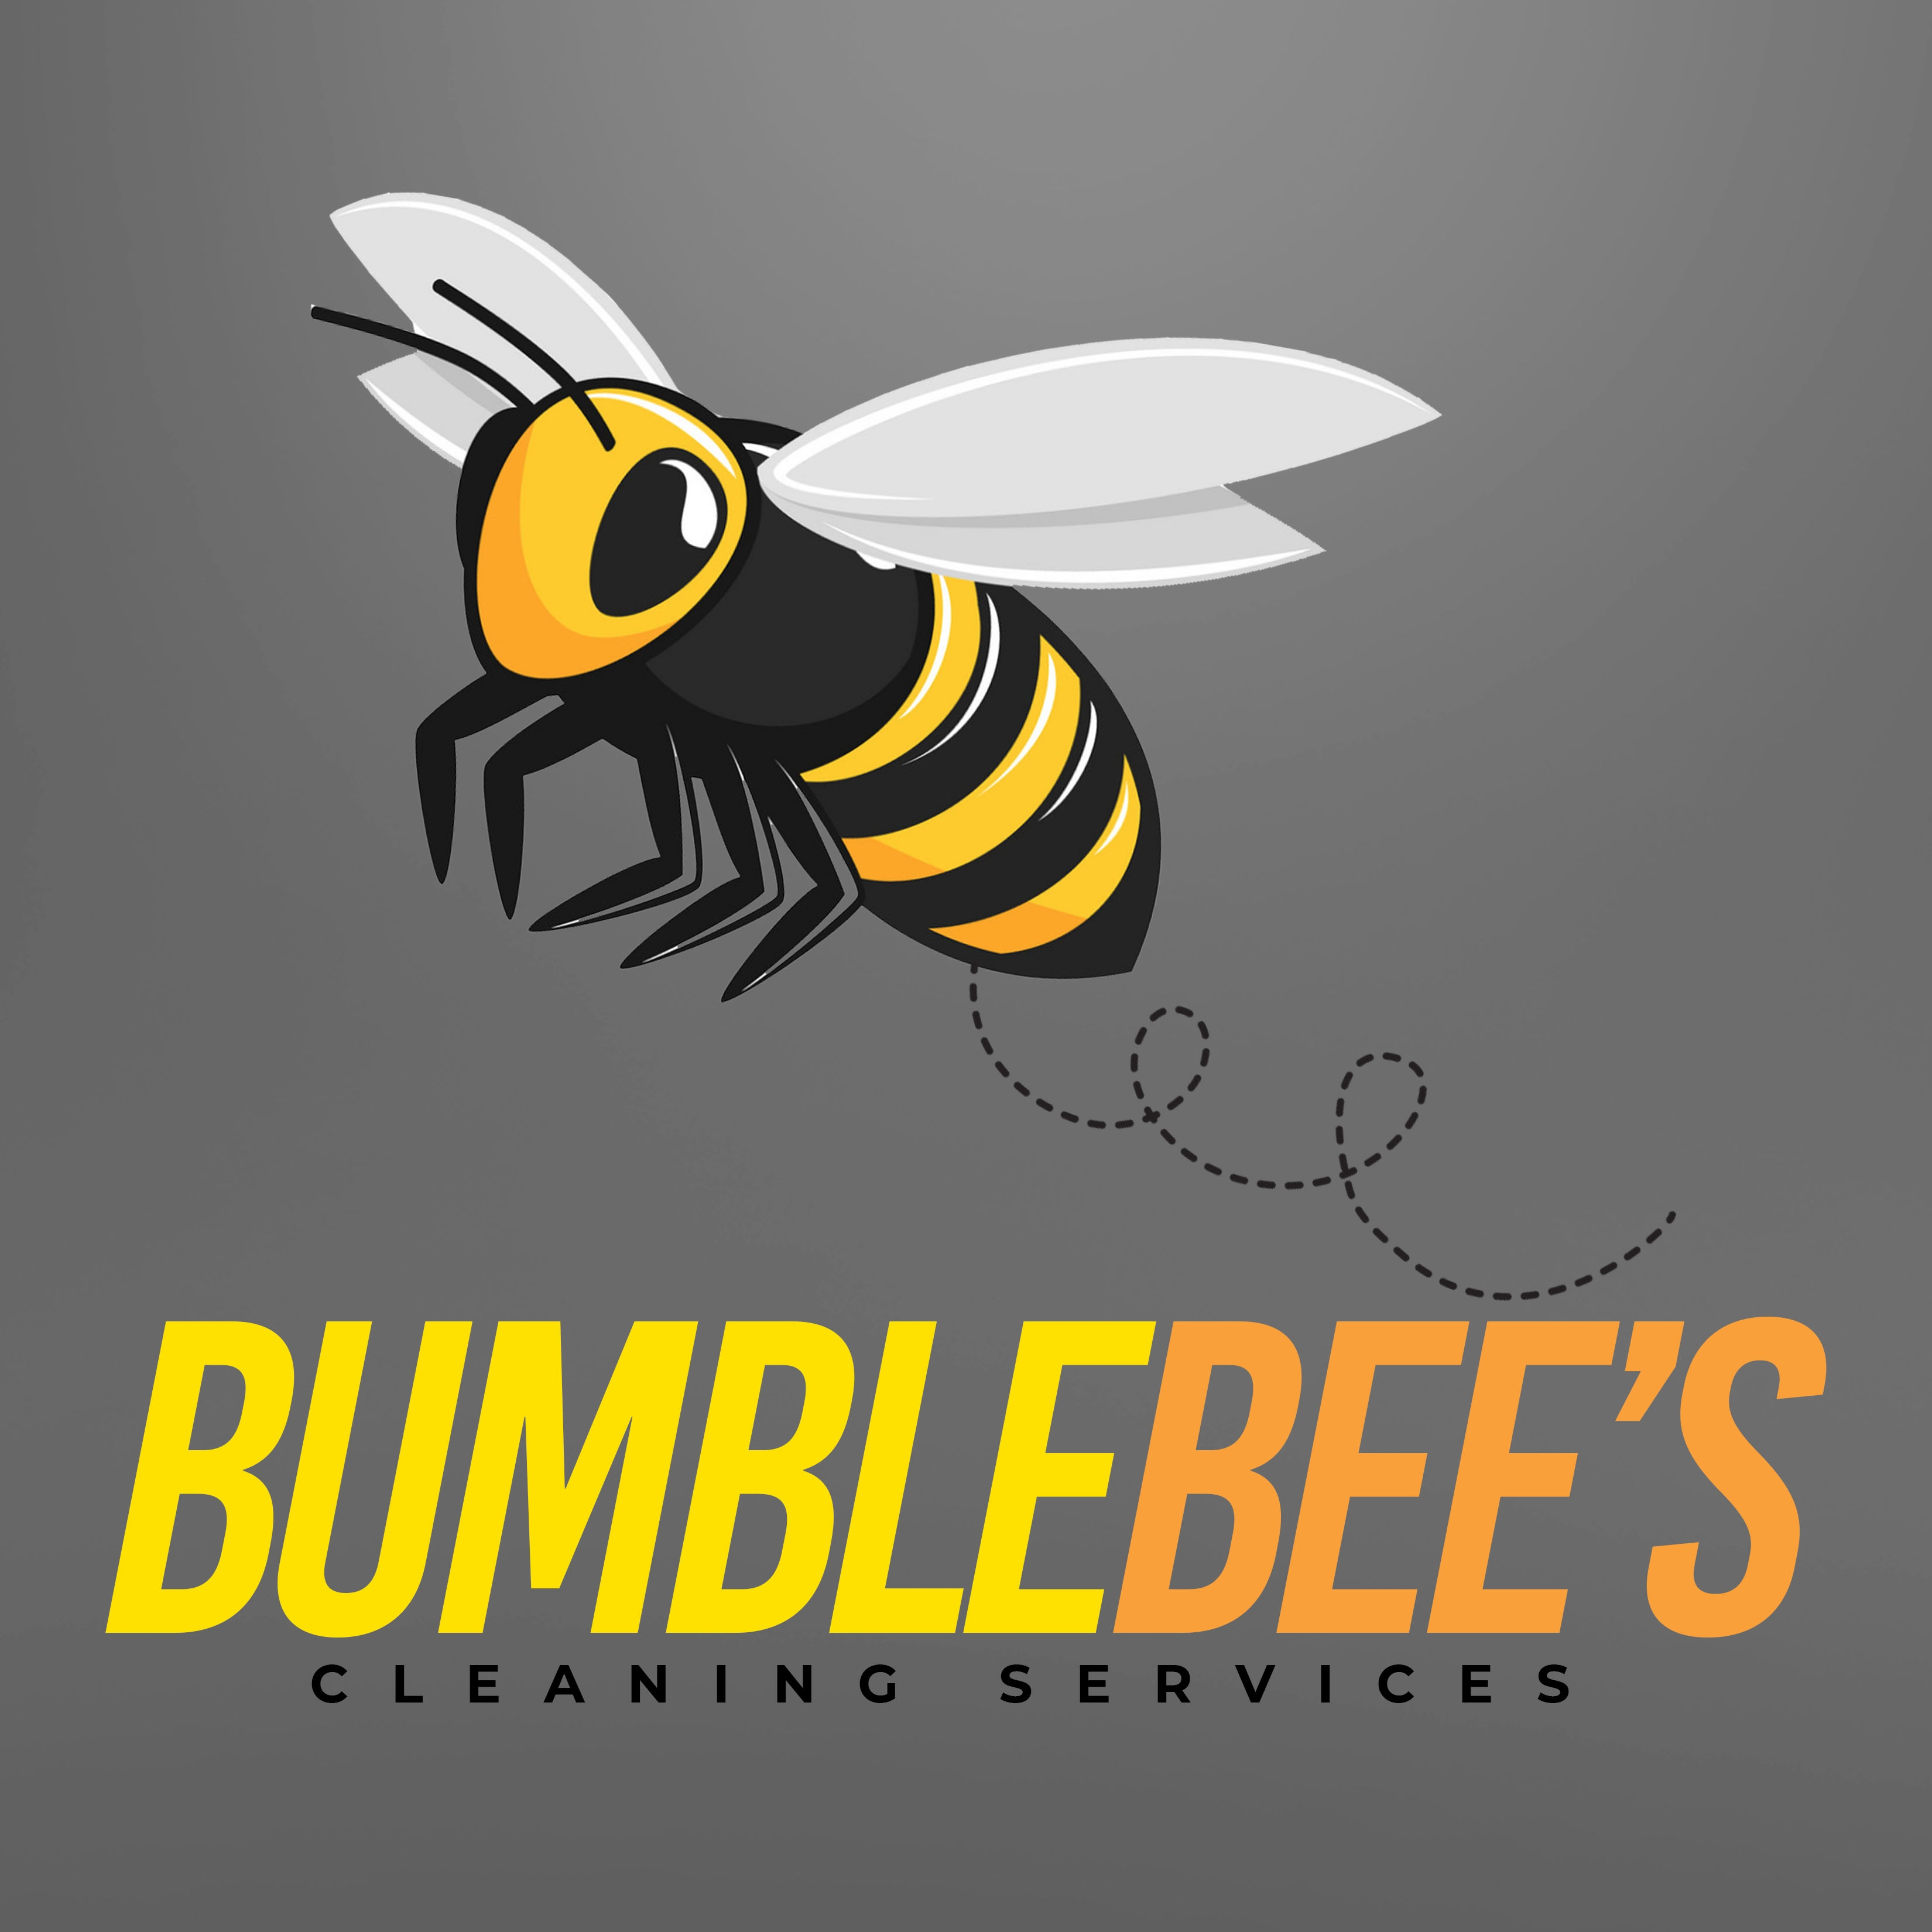 Bumblebee's Cleaning Service